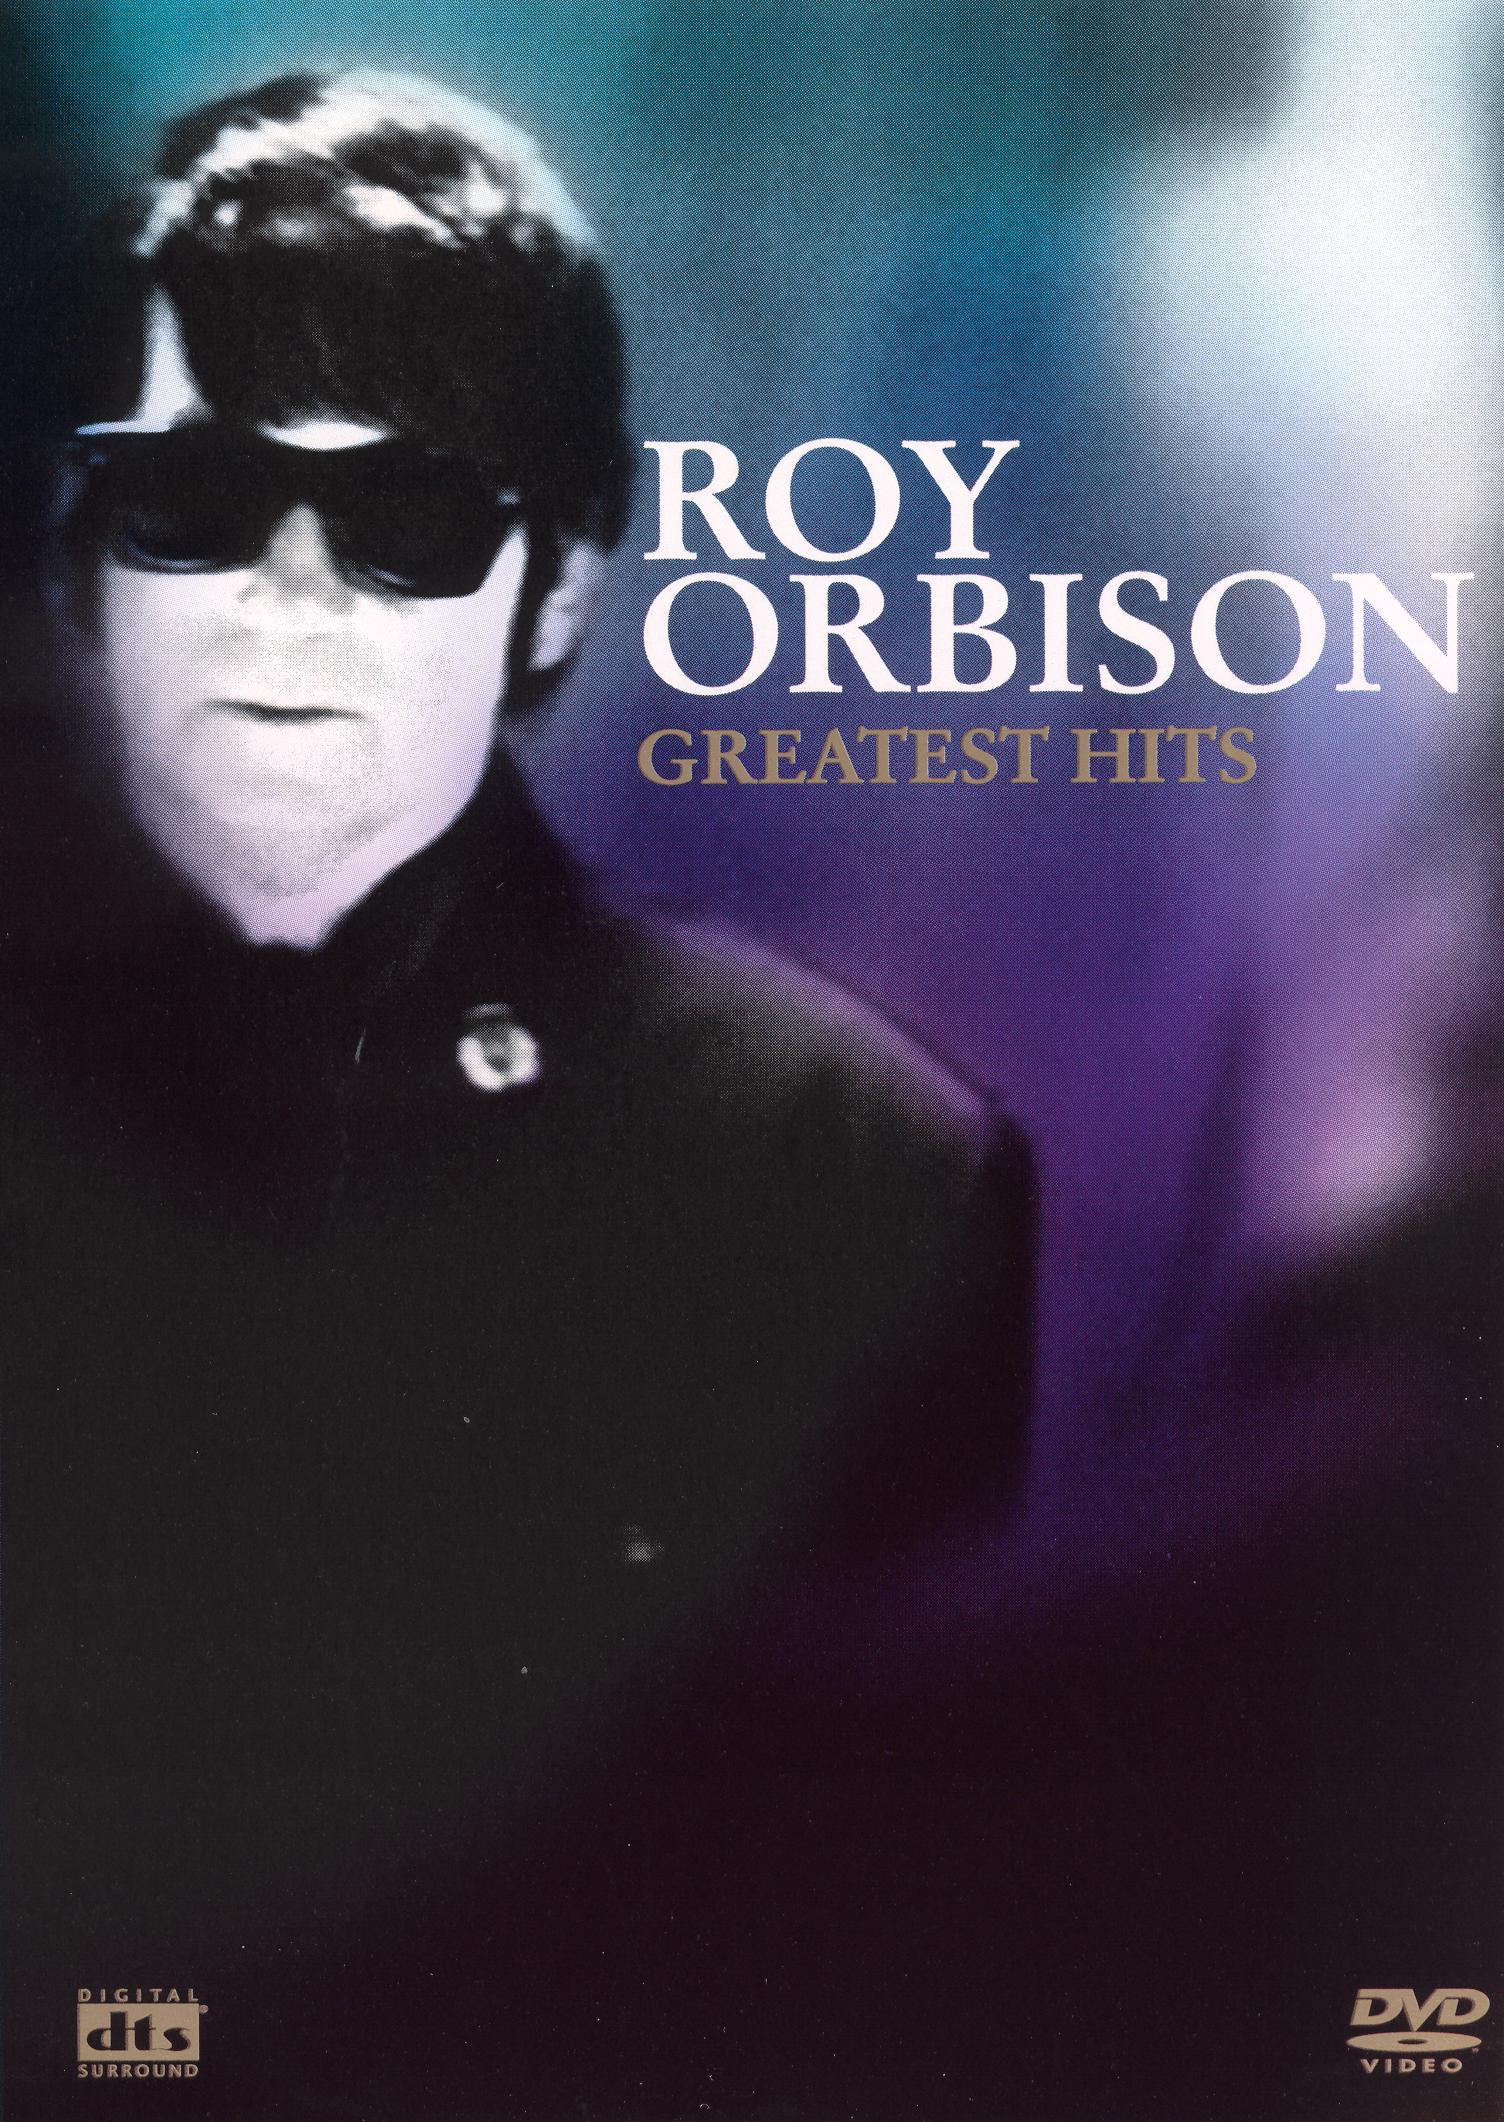 Roy Orbison: Greatest Hits